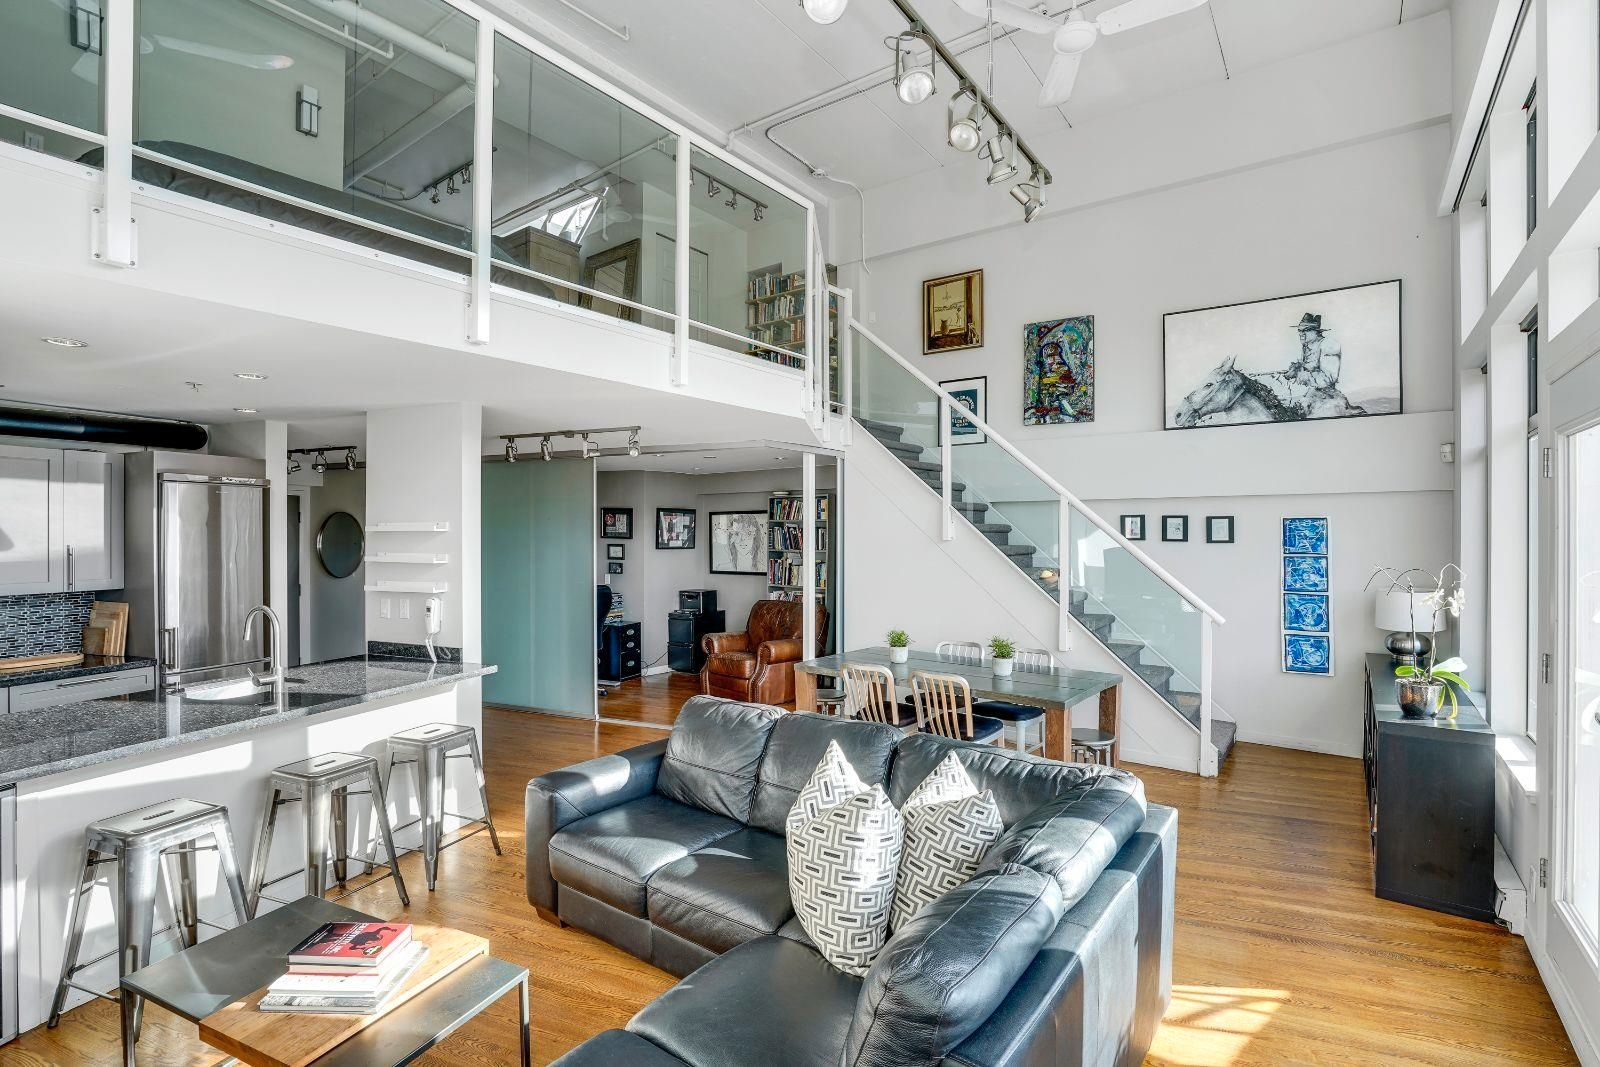 Main Photo: 603 28 POWELL Street in Vancouver: Downtown VE Condo for sale (Vancouver East)  : MLS®# R2620664